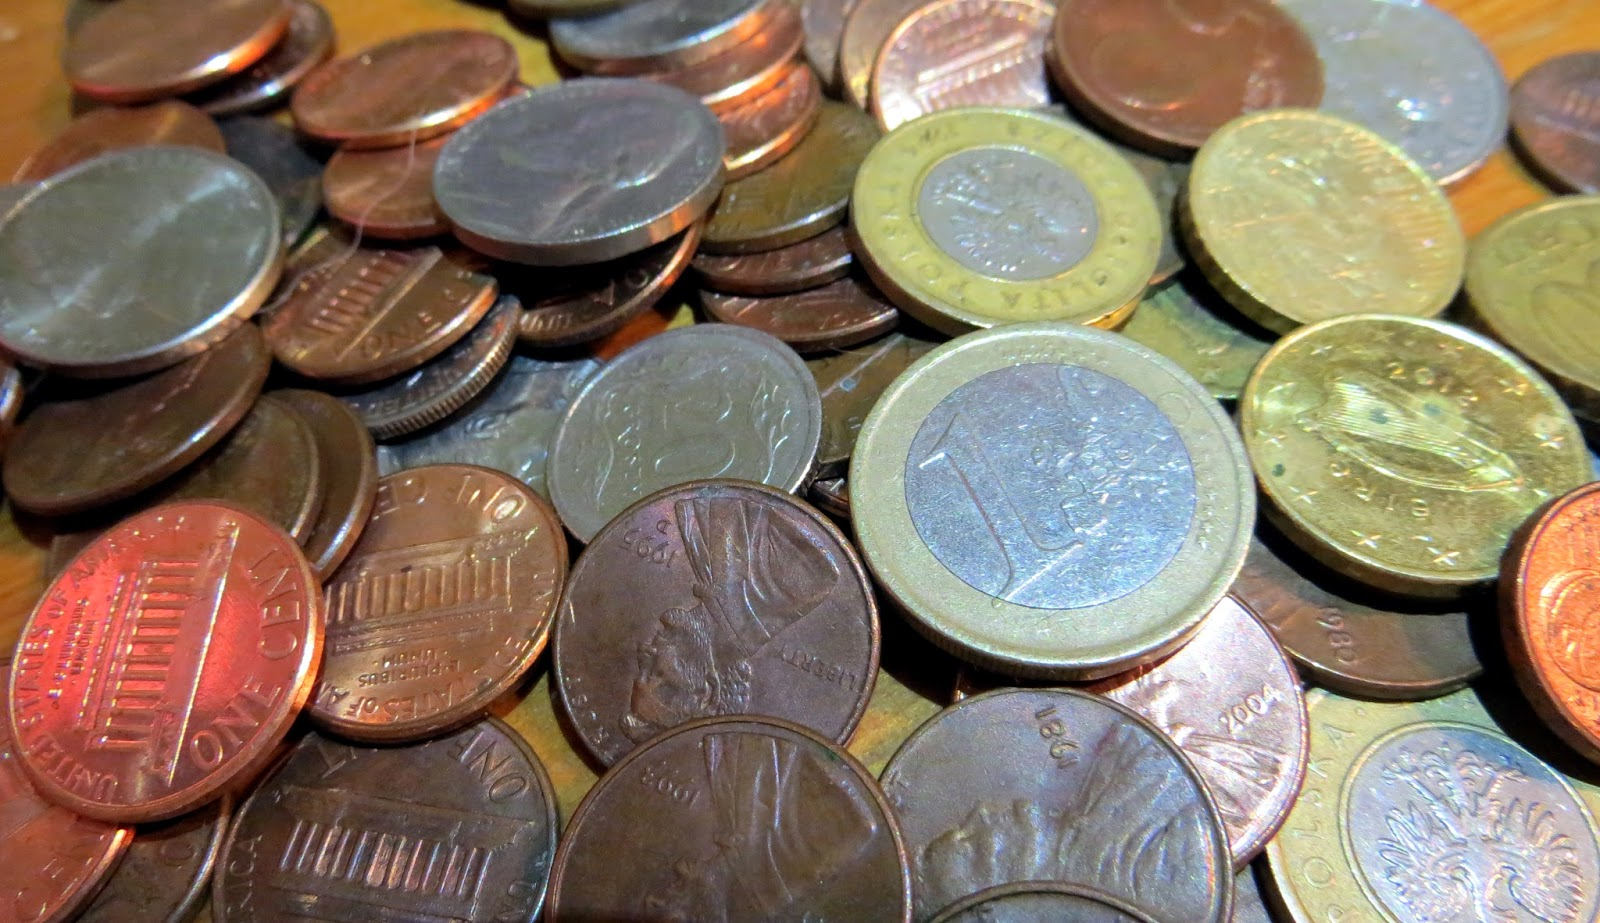 coins, how to save for travelling, how to save for traveling, backpacking, travel, vacation, gap year, sabbatical, quit job and travel, money worries, budgeting, loans, debt,